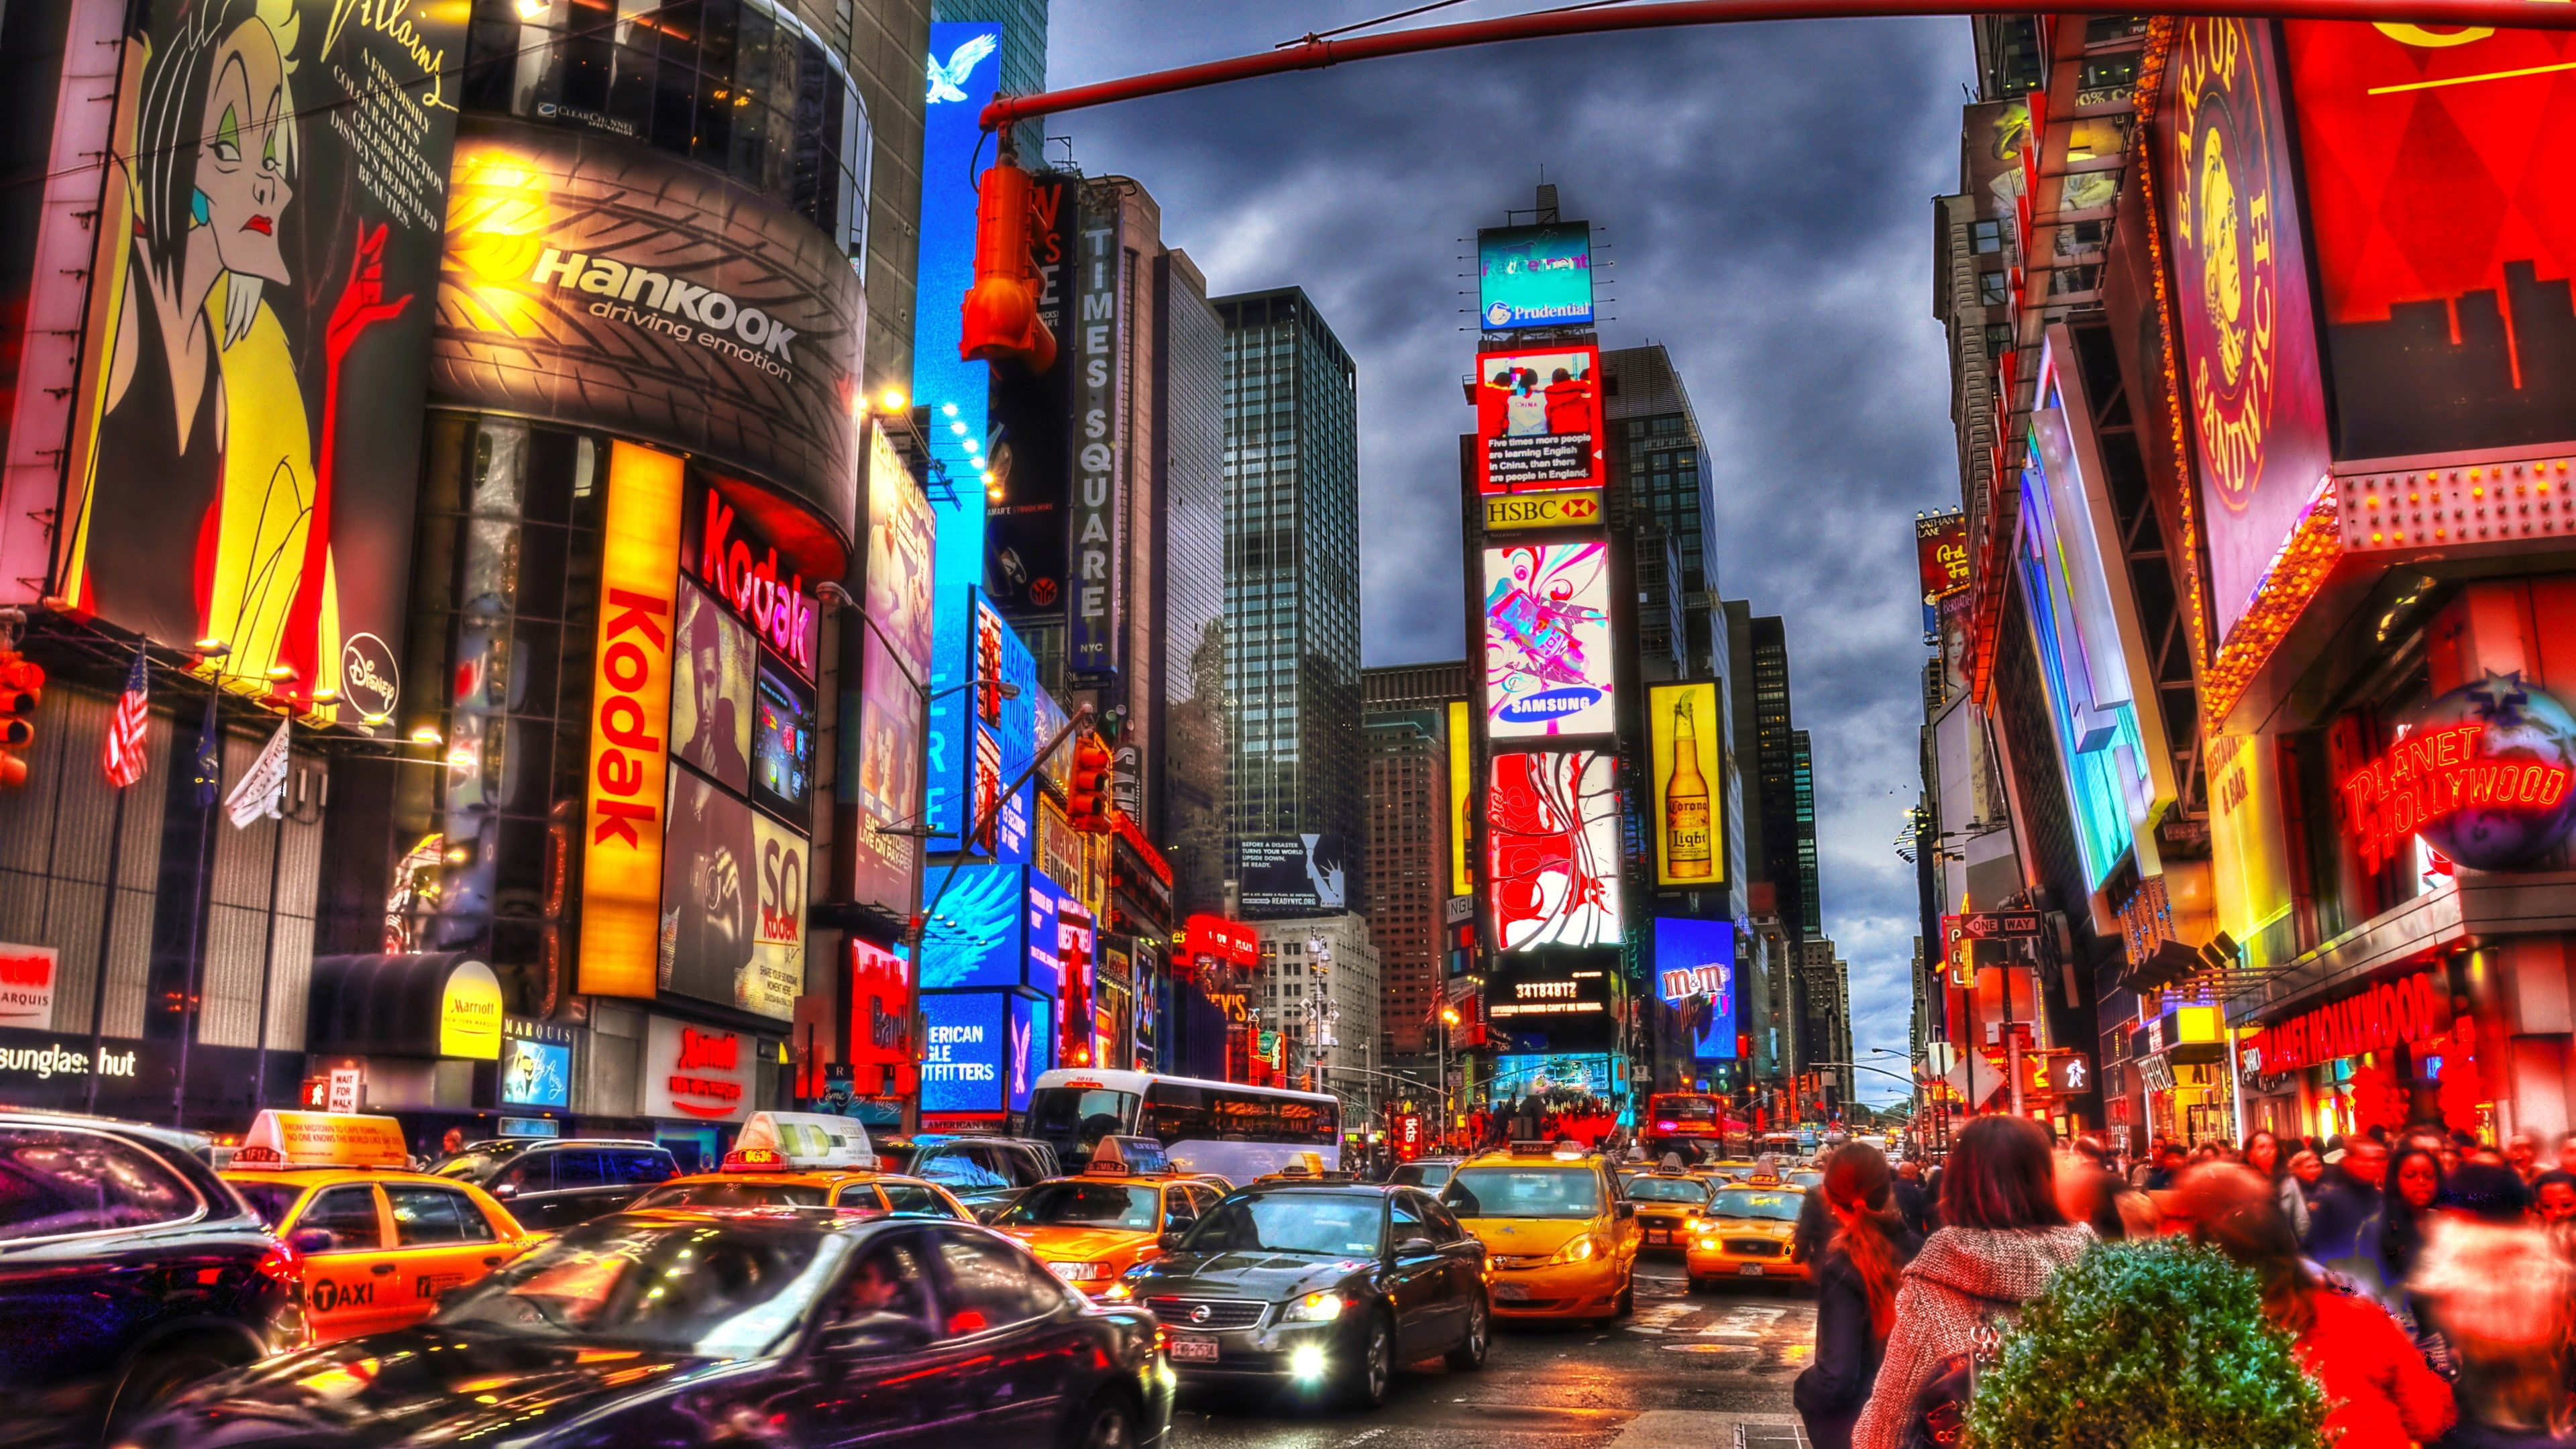 New York City Times Square Night Skyscrapers Shops Lights Cars People New York Cit Times Square Wallpaper New York Wallpaper Times Square Photography